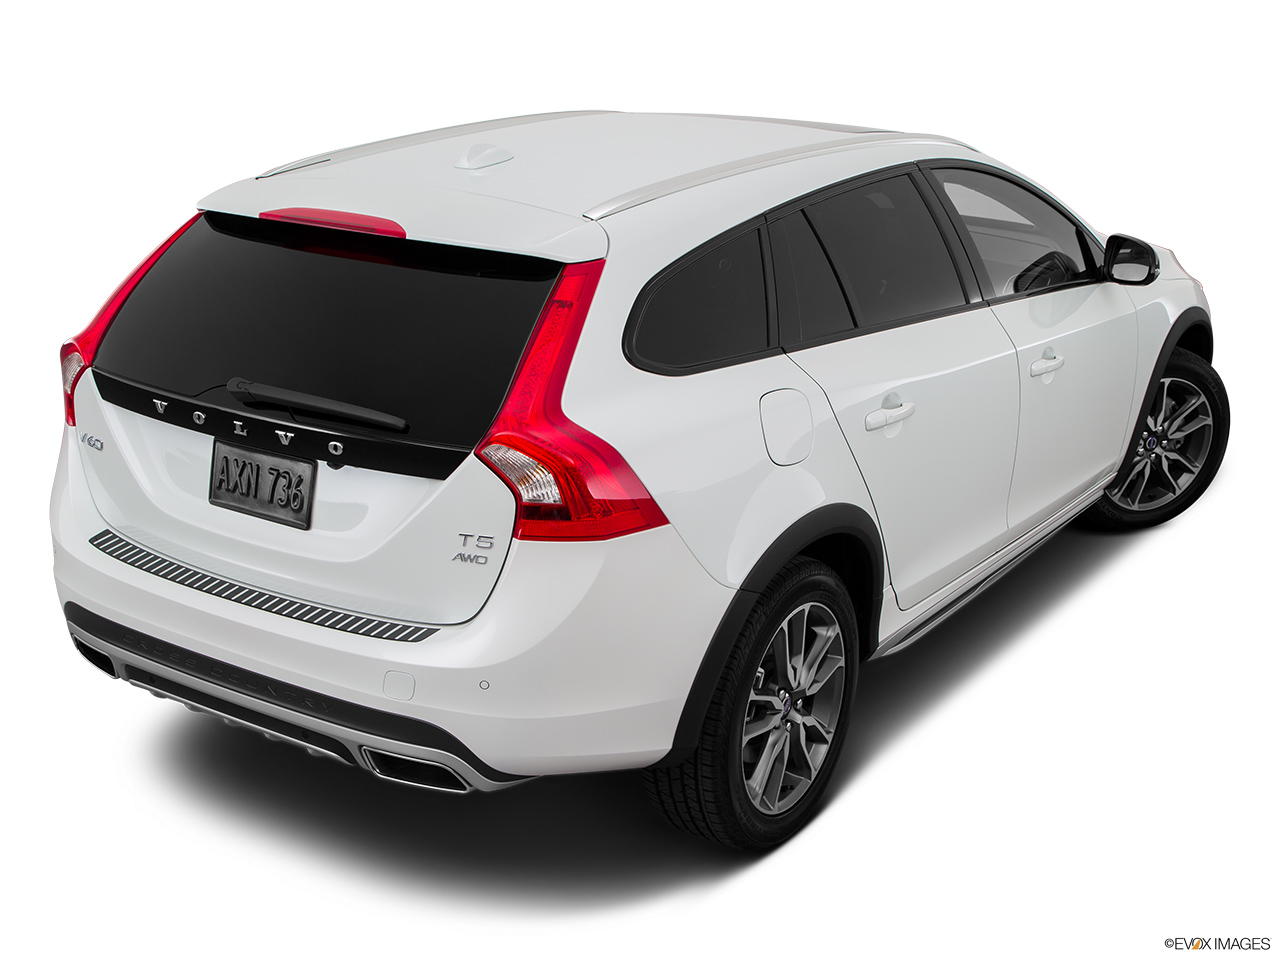 2015 Volvo V60 Cross Country T5 AWD Rear 3/4 angle view.